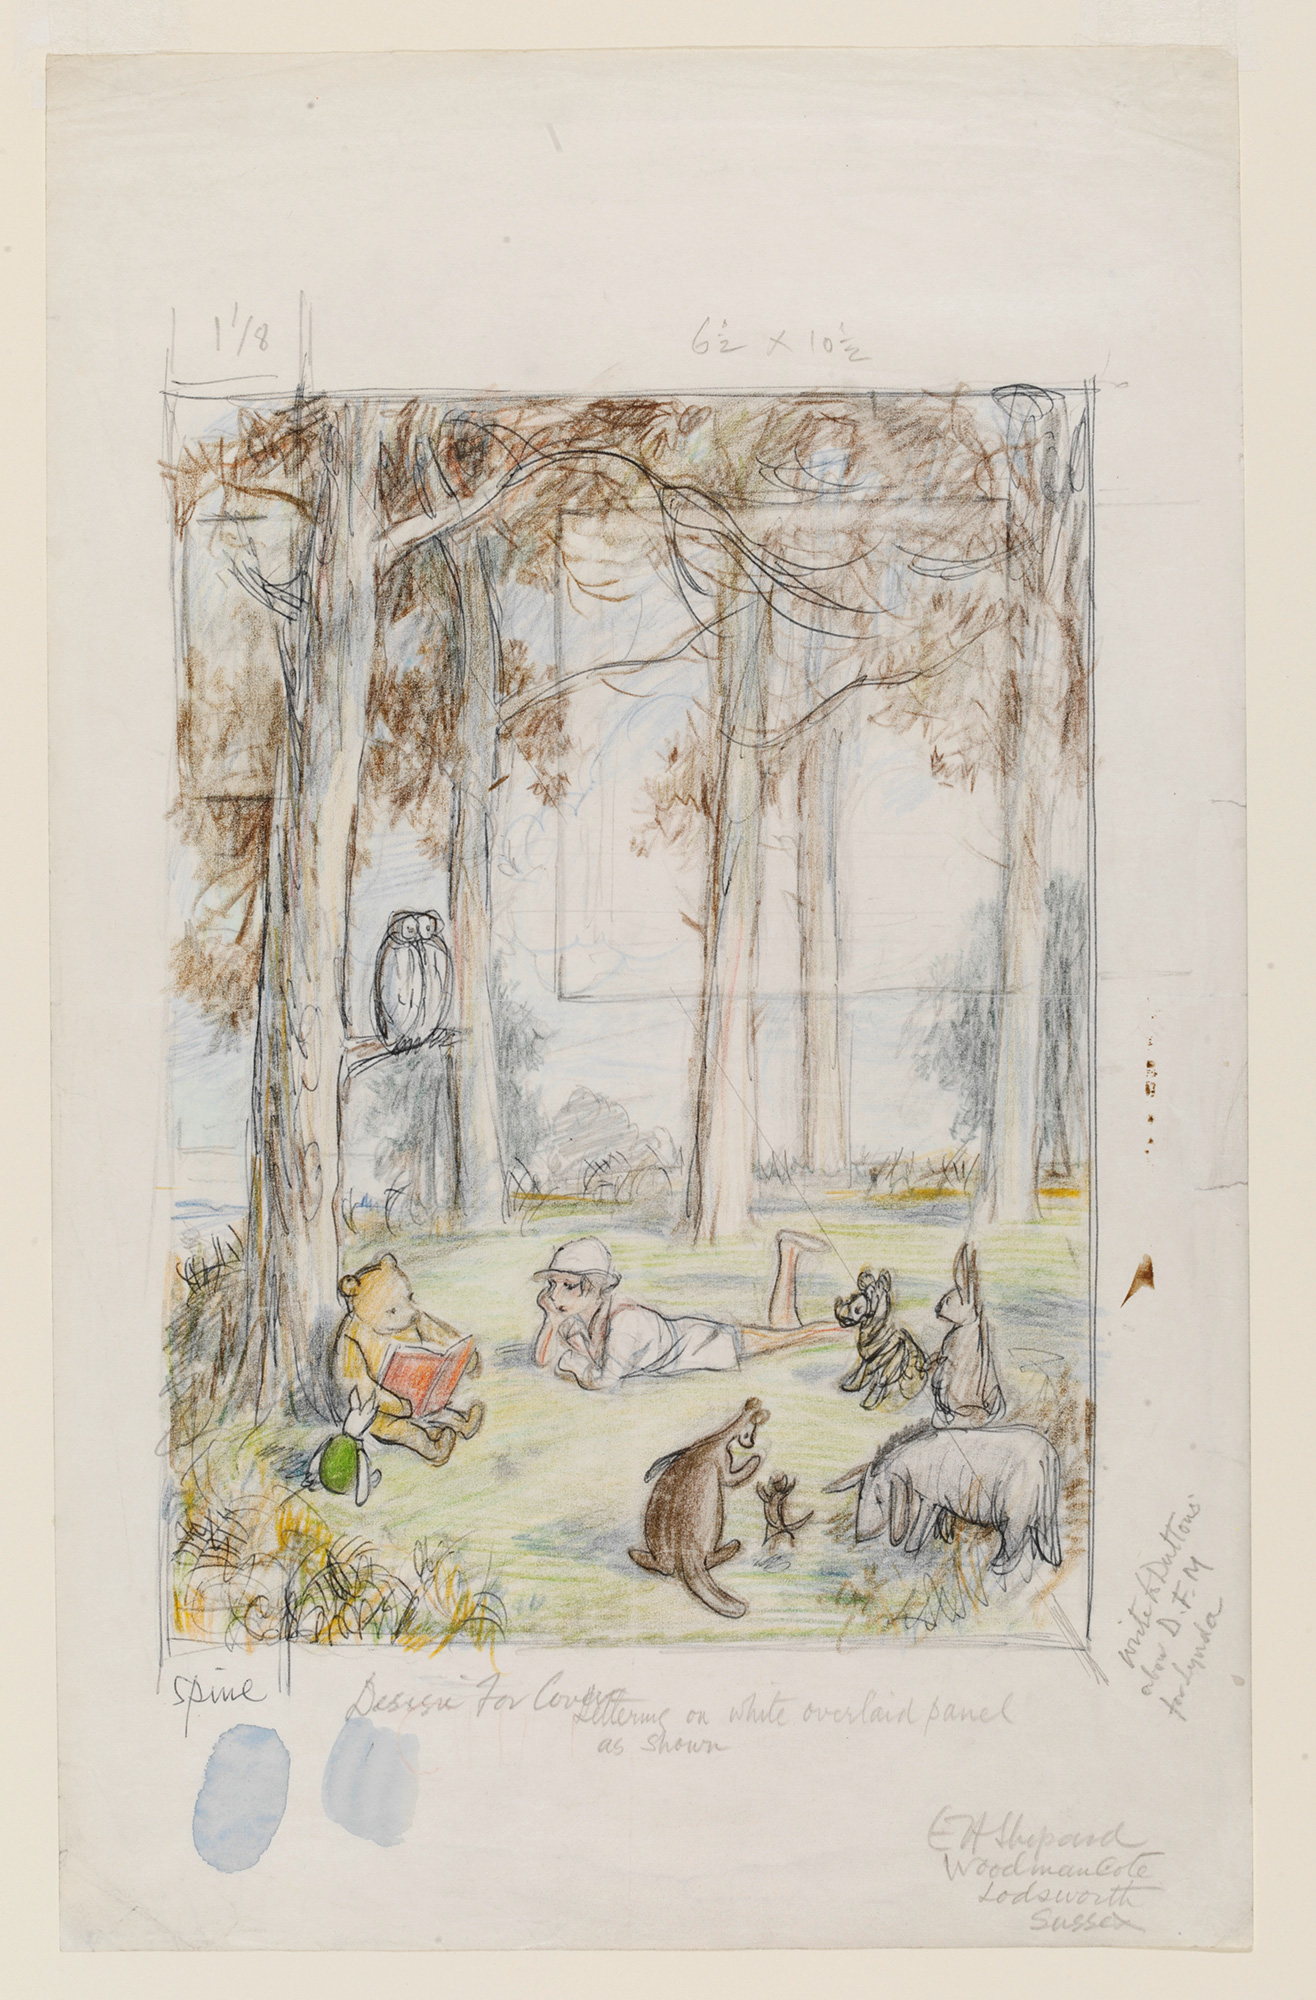 Winnie The Pooh By A A Milne Illustrated By E H Shepard Original Sketches And Artworks The British Library